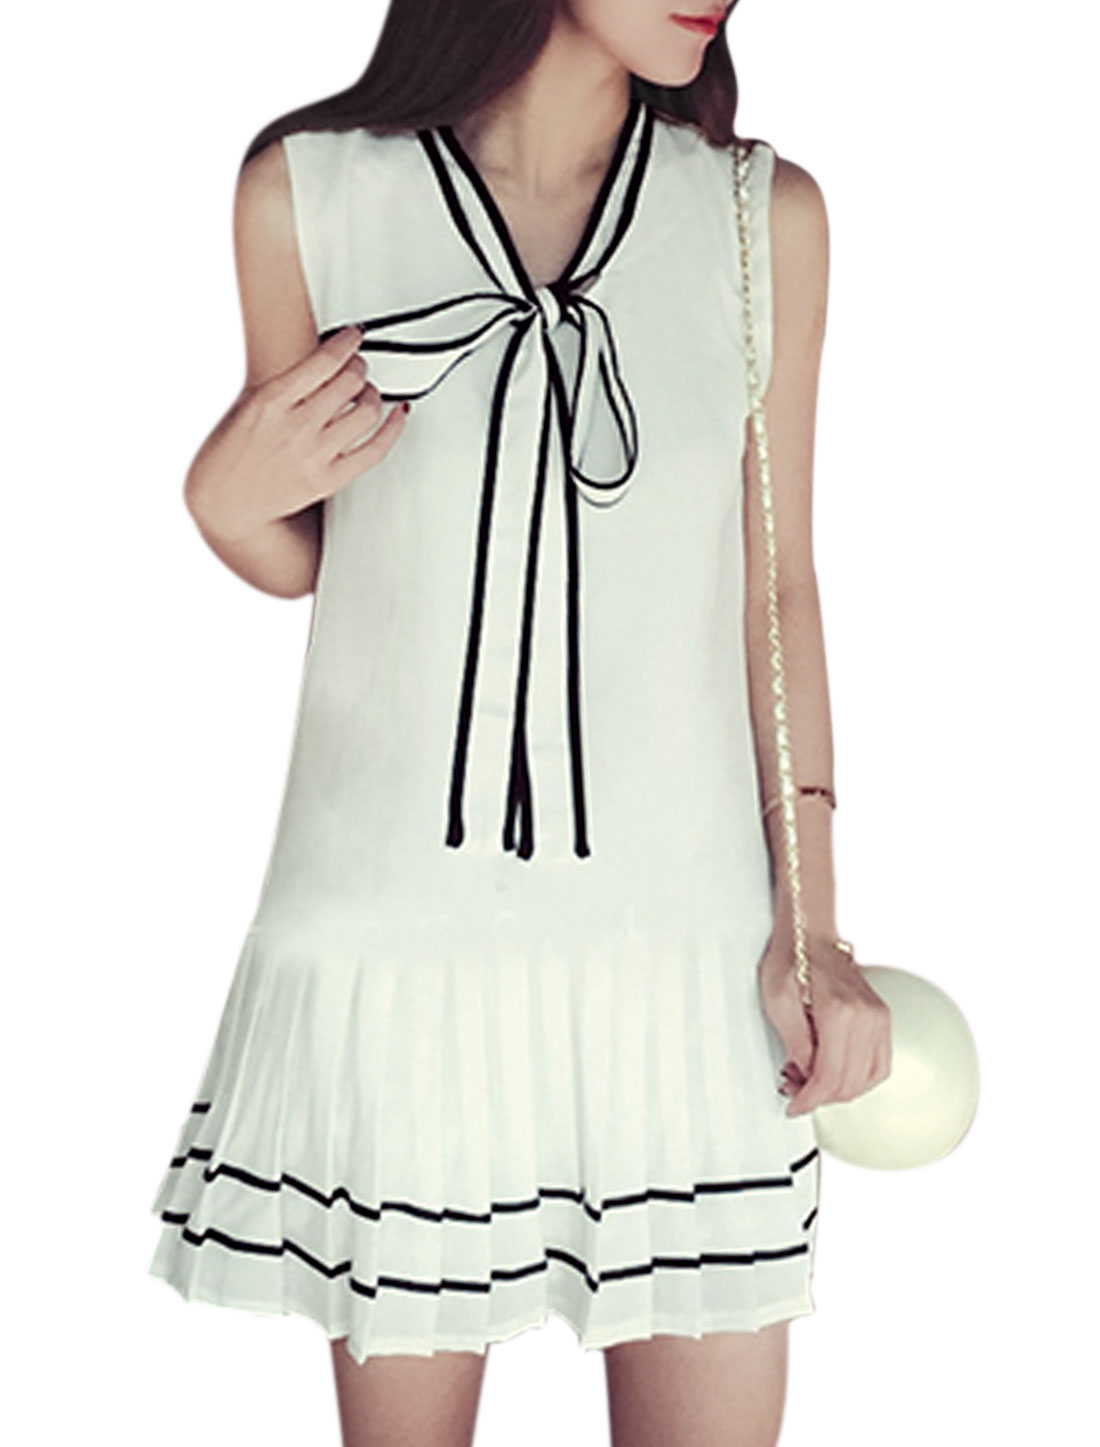 Ladies Sleeveless Self Tie Collar Pleated Hem Unlined Casual Dress White XS